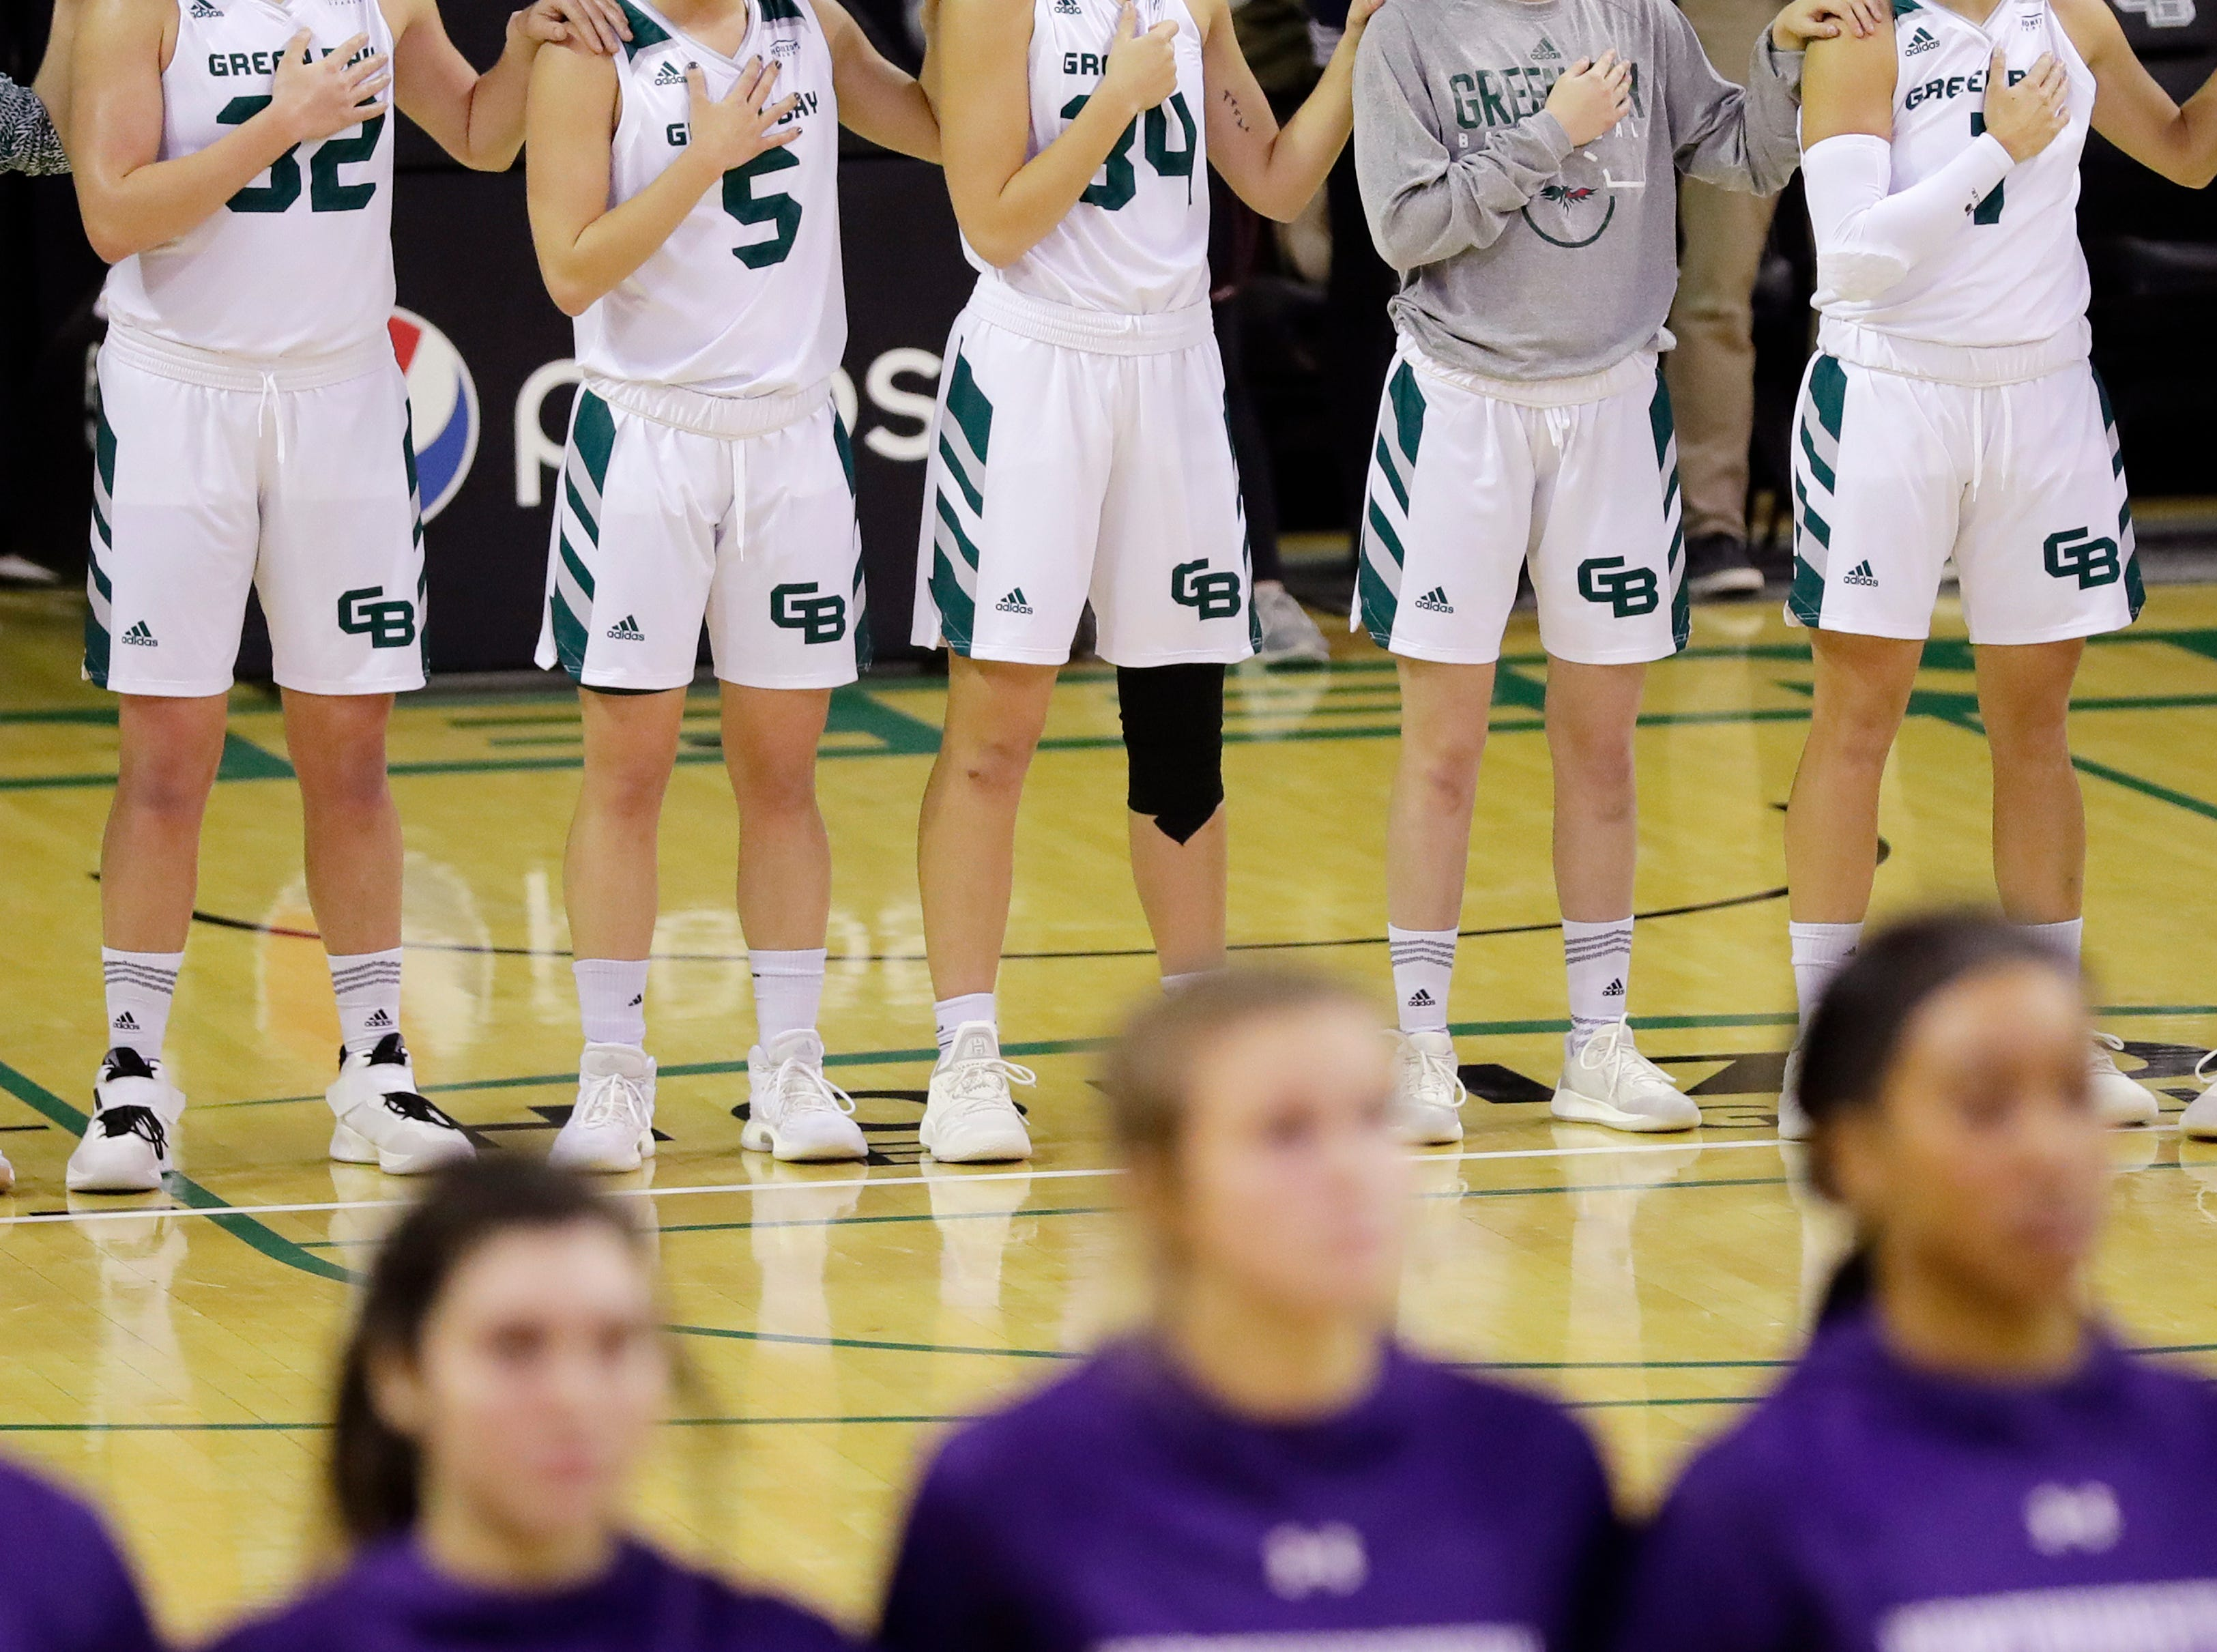 Green Bay Phoenix players lineup for the national anthem before facing the Northwestern Wildcats in a women's NCAA basketball game at the Kress Center on Tuesday, November 6, 2018 in Green Bay, Wis.